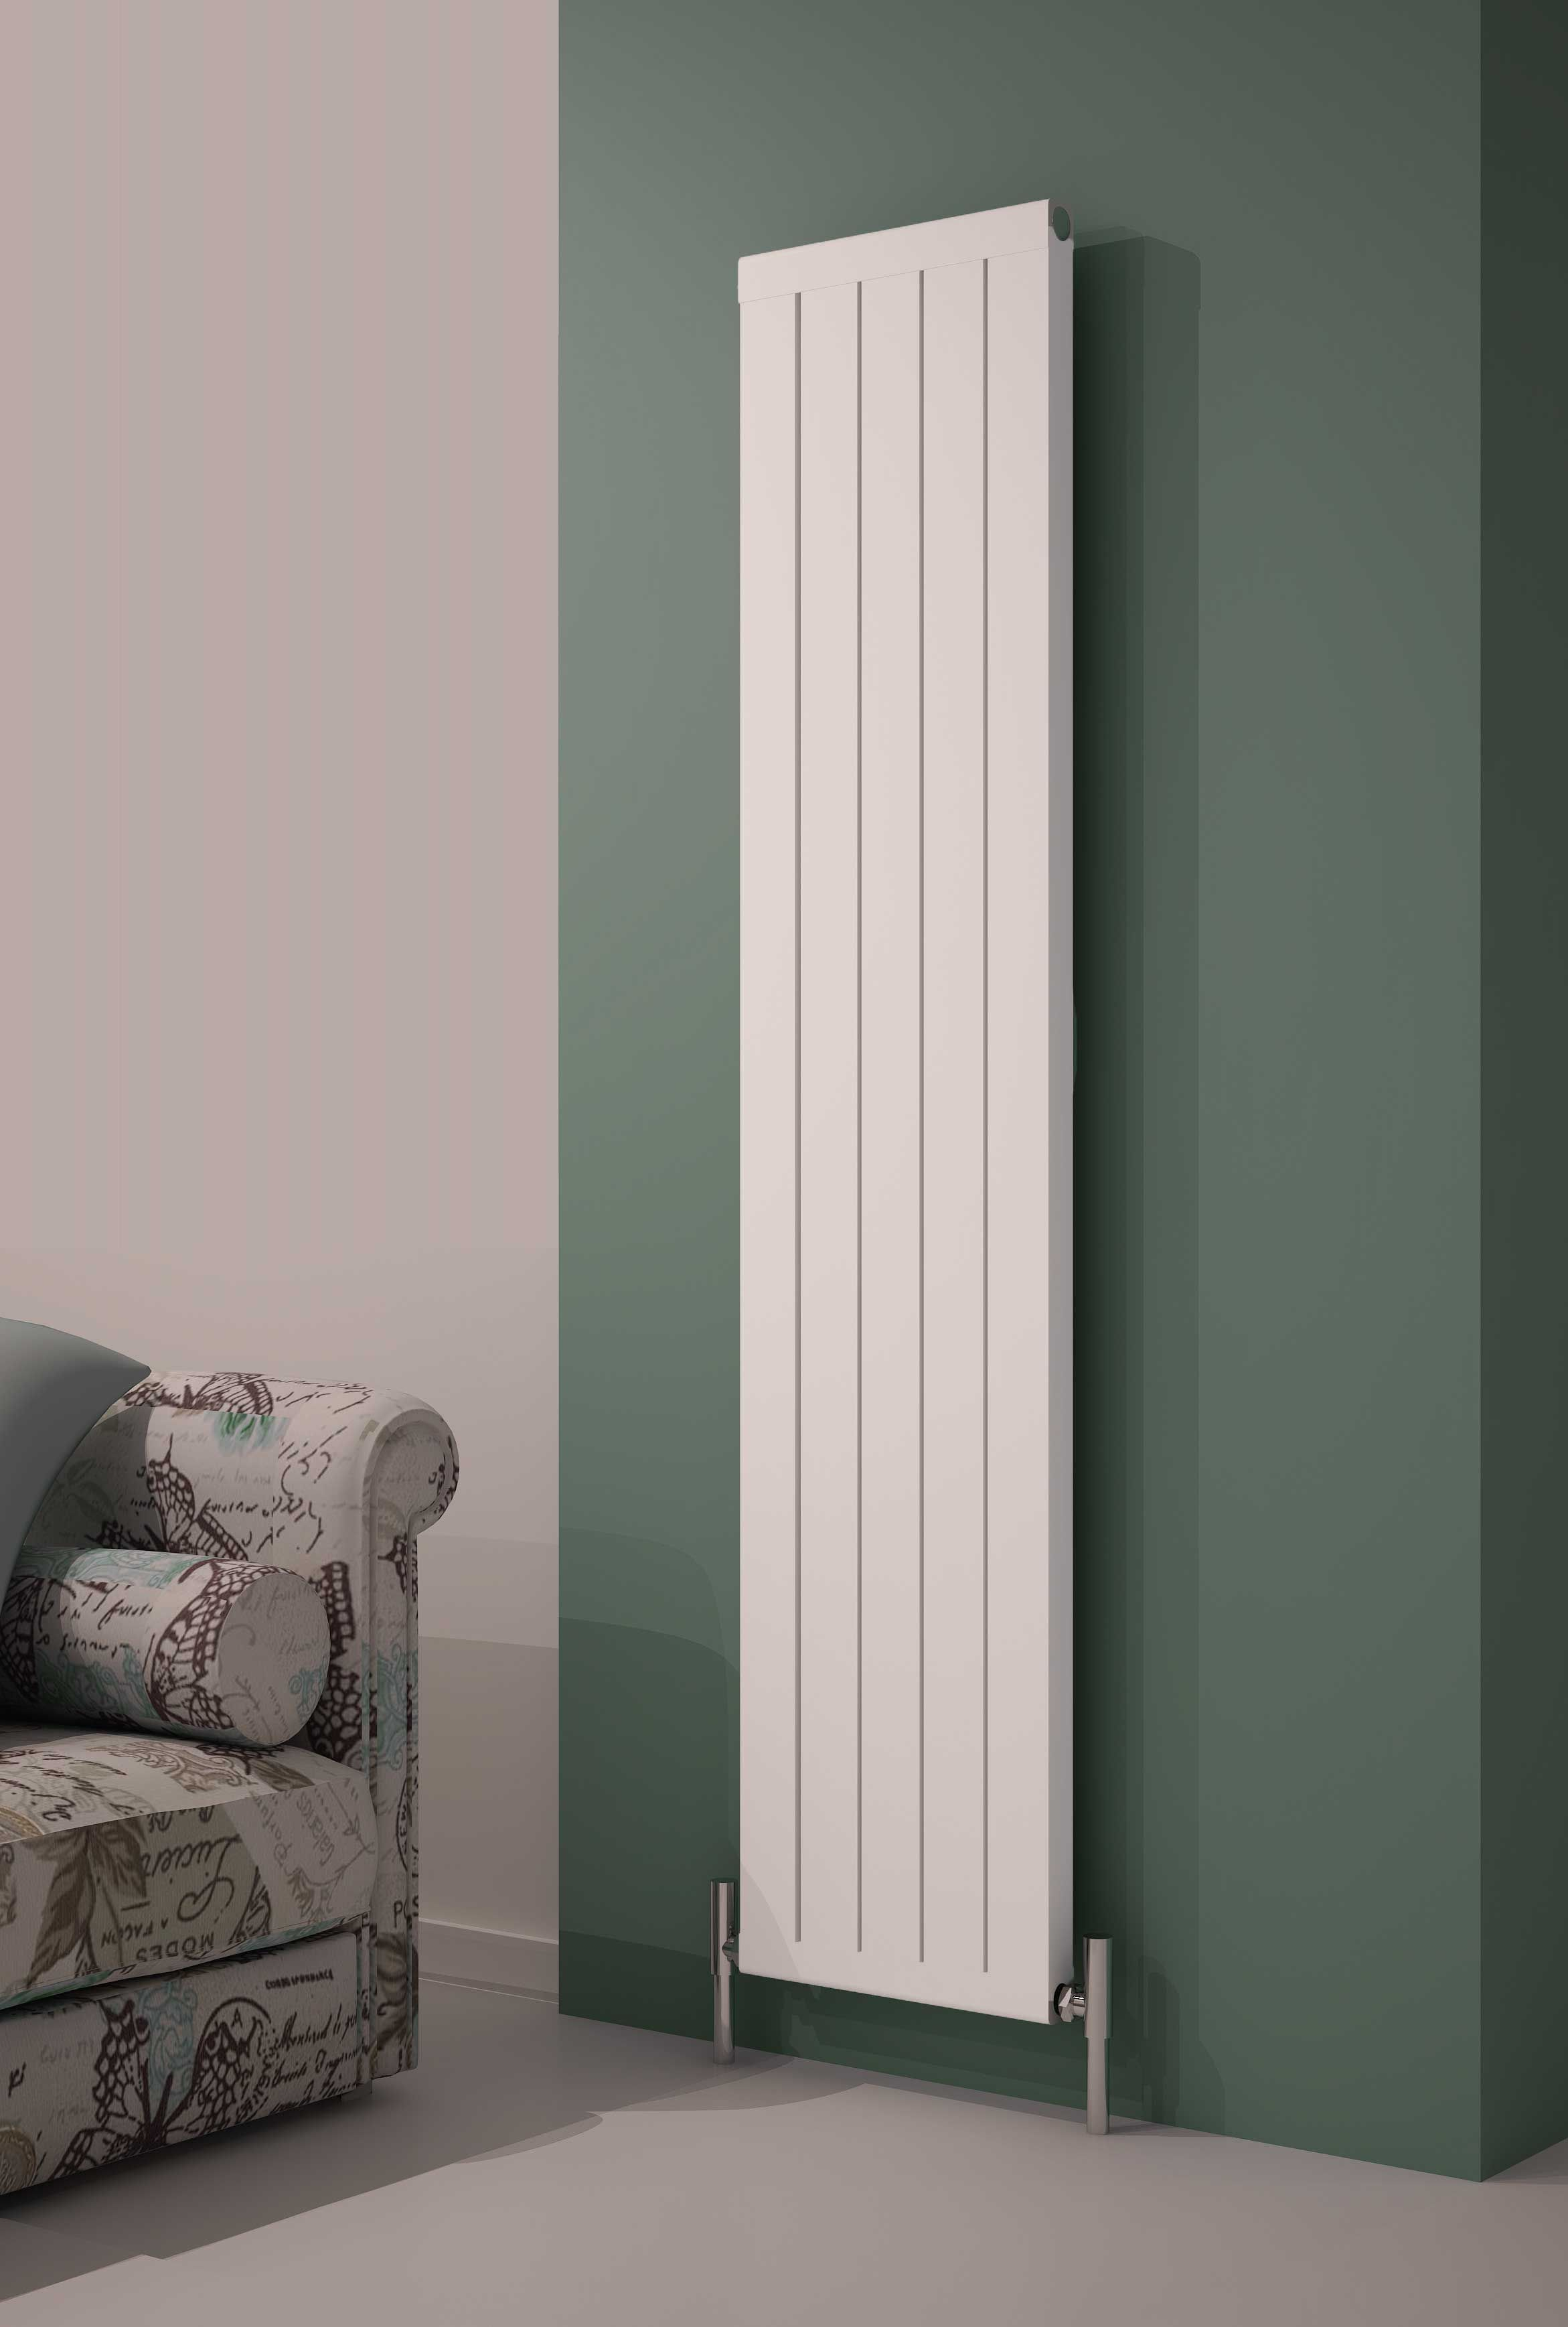 Order this Reina Serio Aluminium Vertical Designer Radiator today from Only  Radiators at a great price, top Customer Care & Free UK Delivery